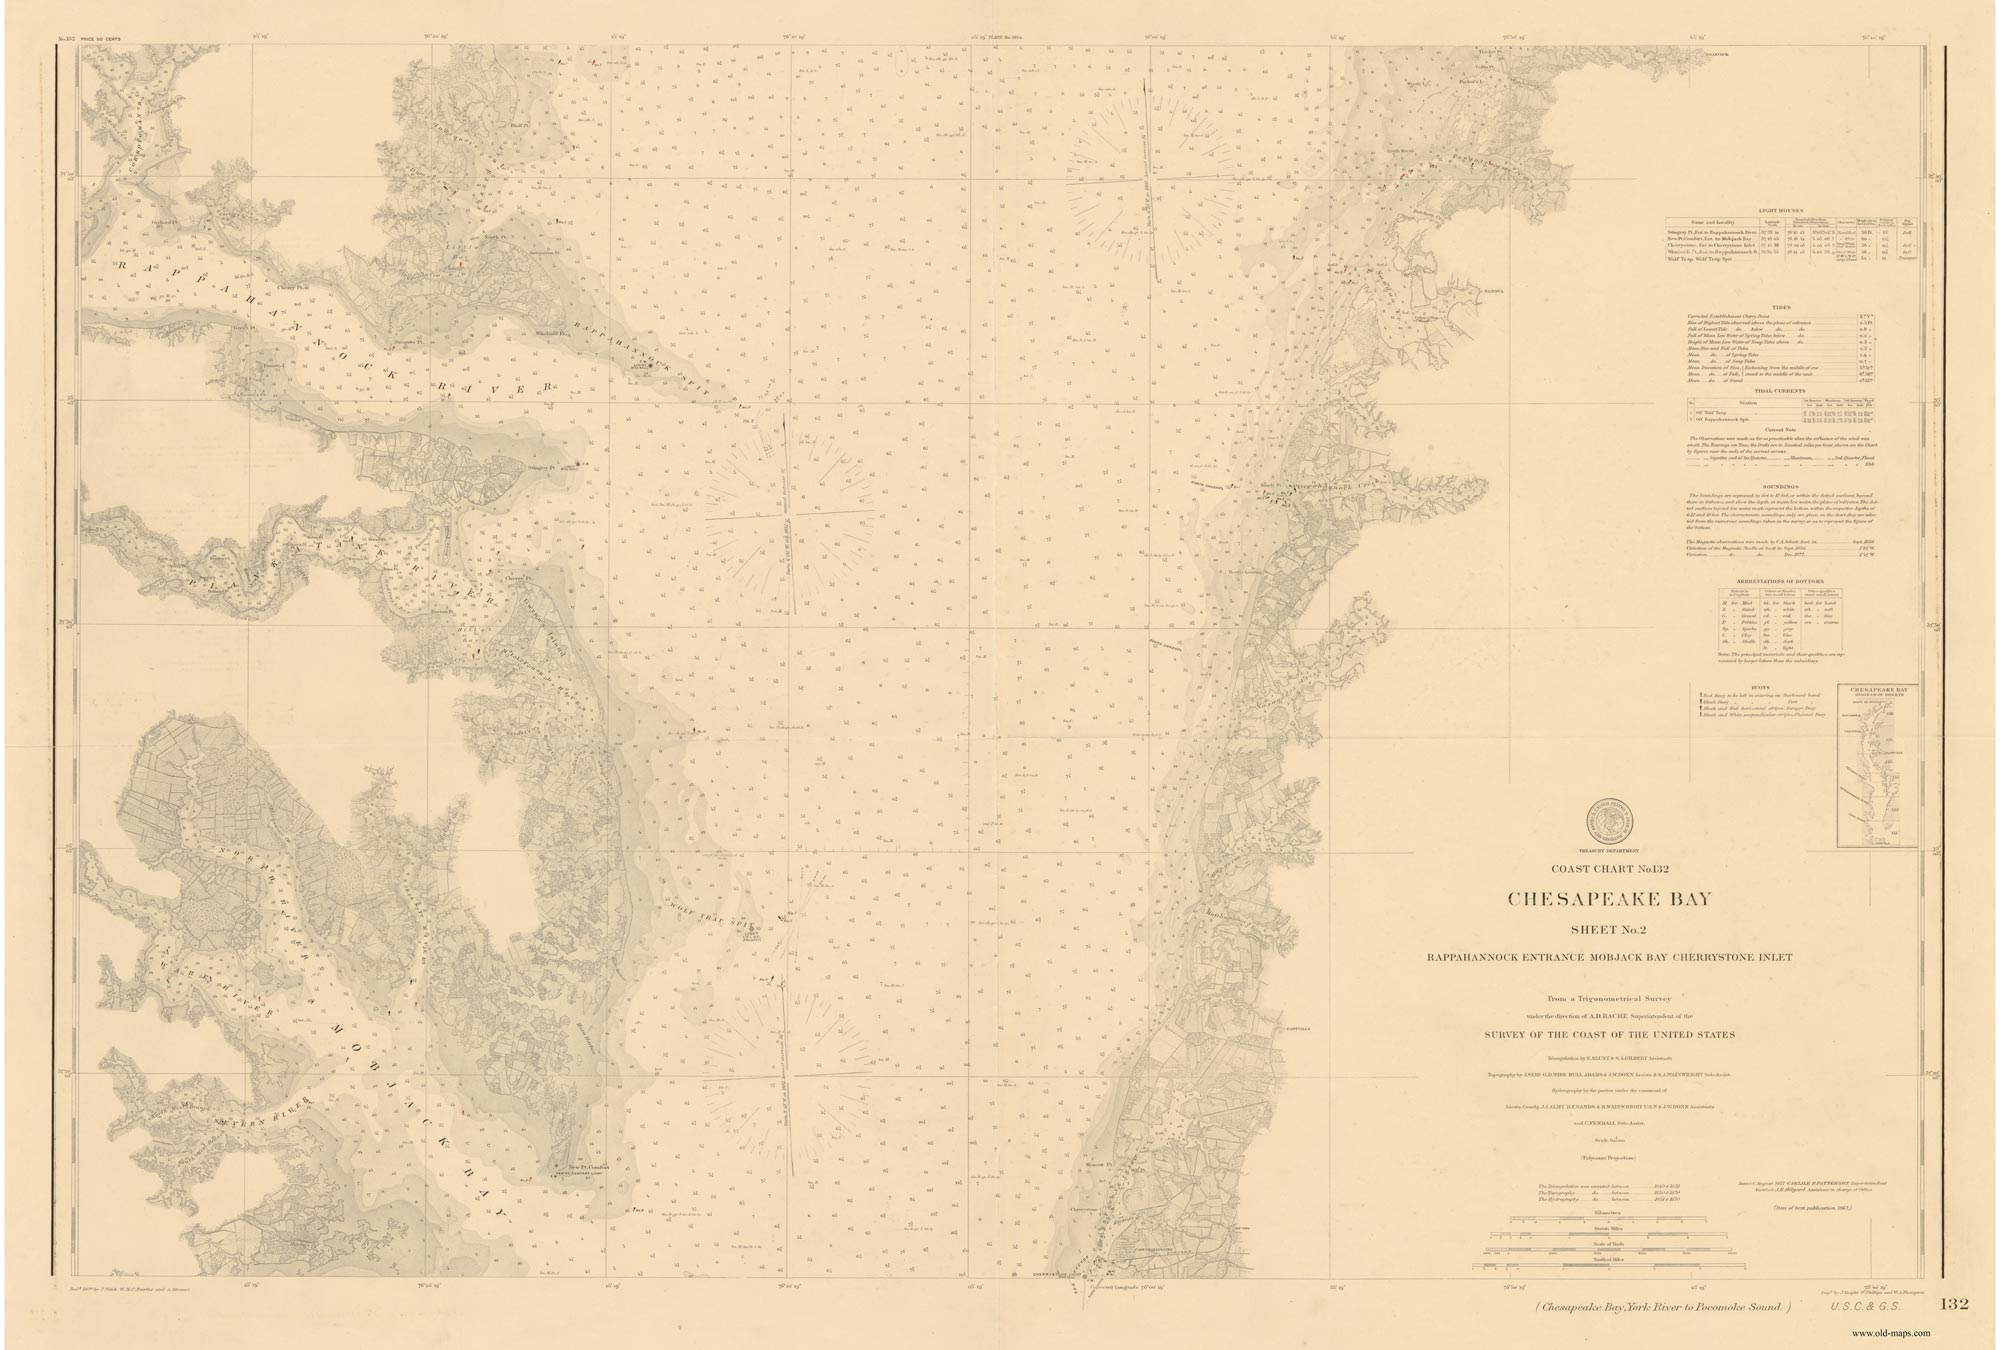 Historical Nautical Charts of the Chesapeake Bay 180000